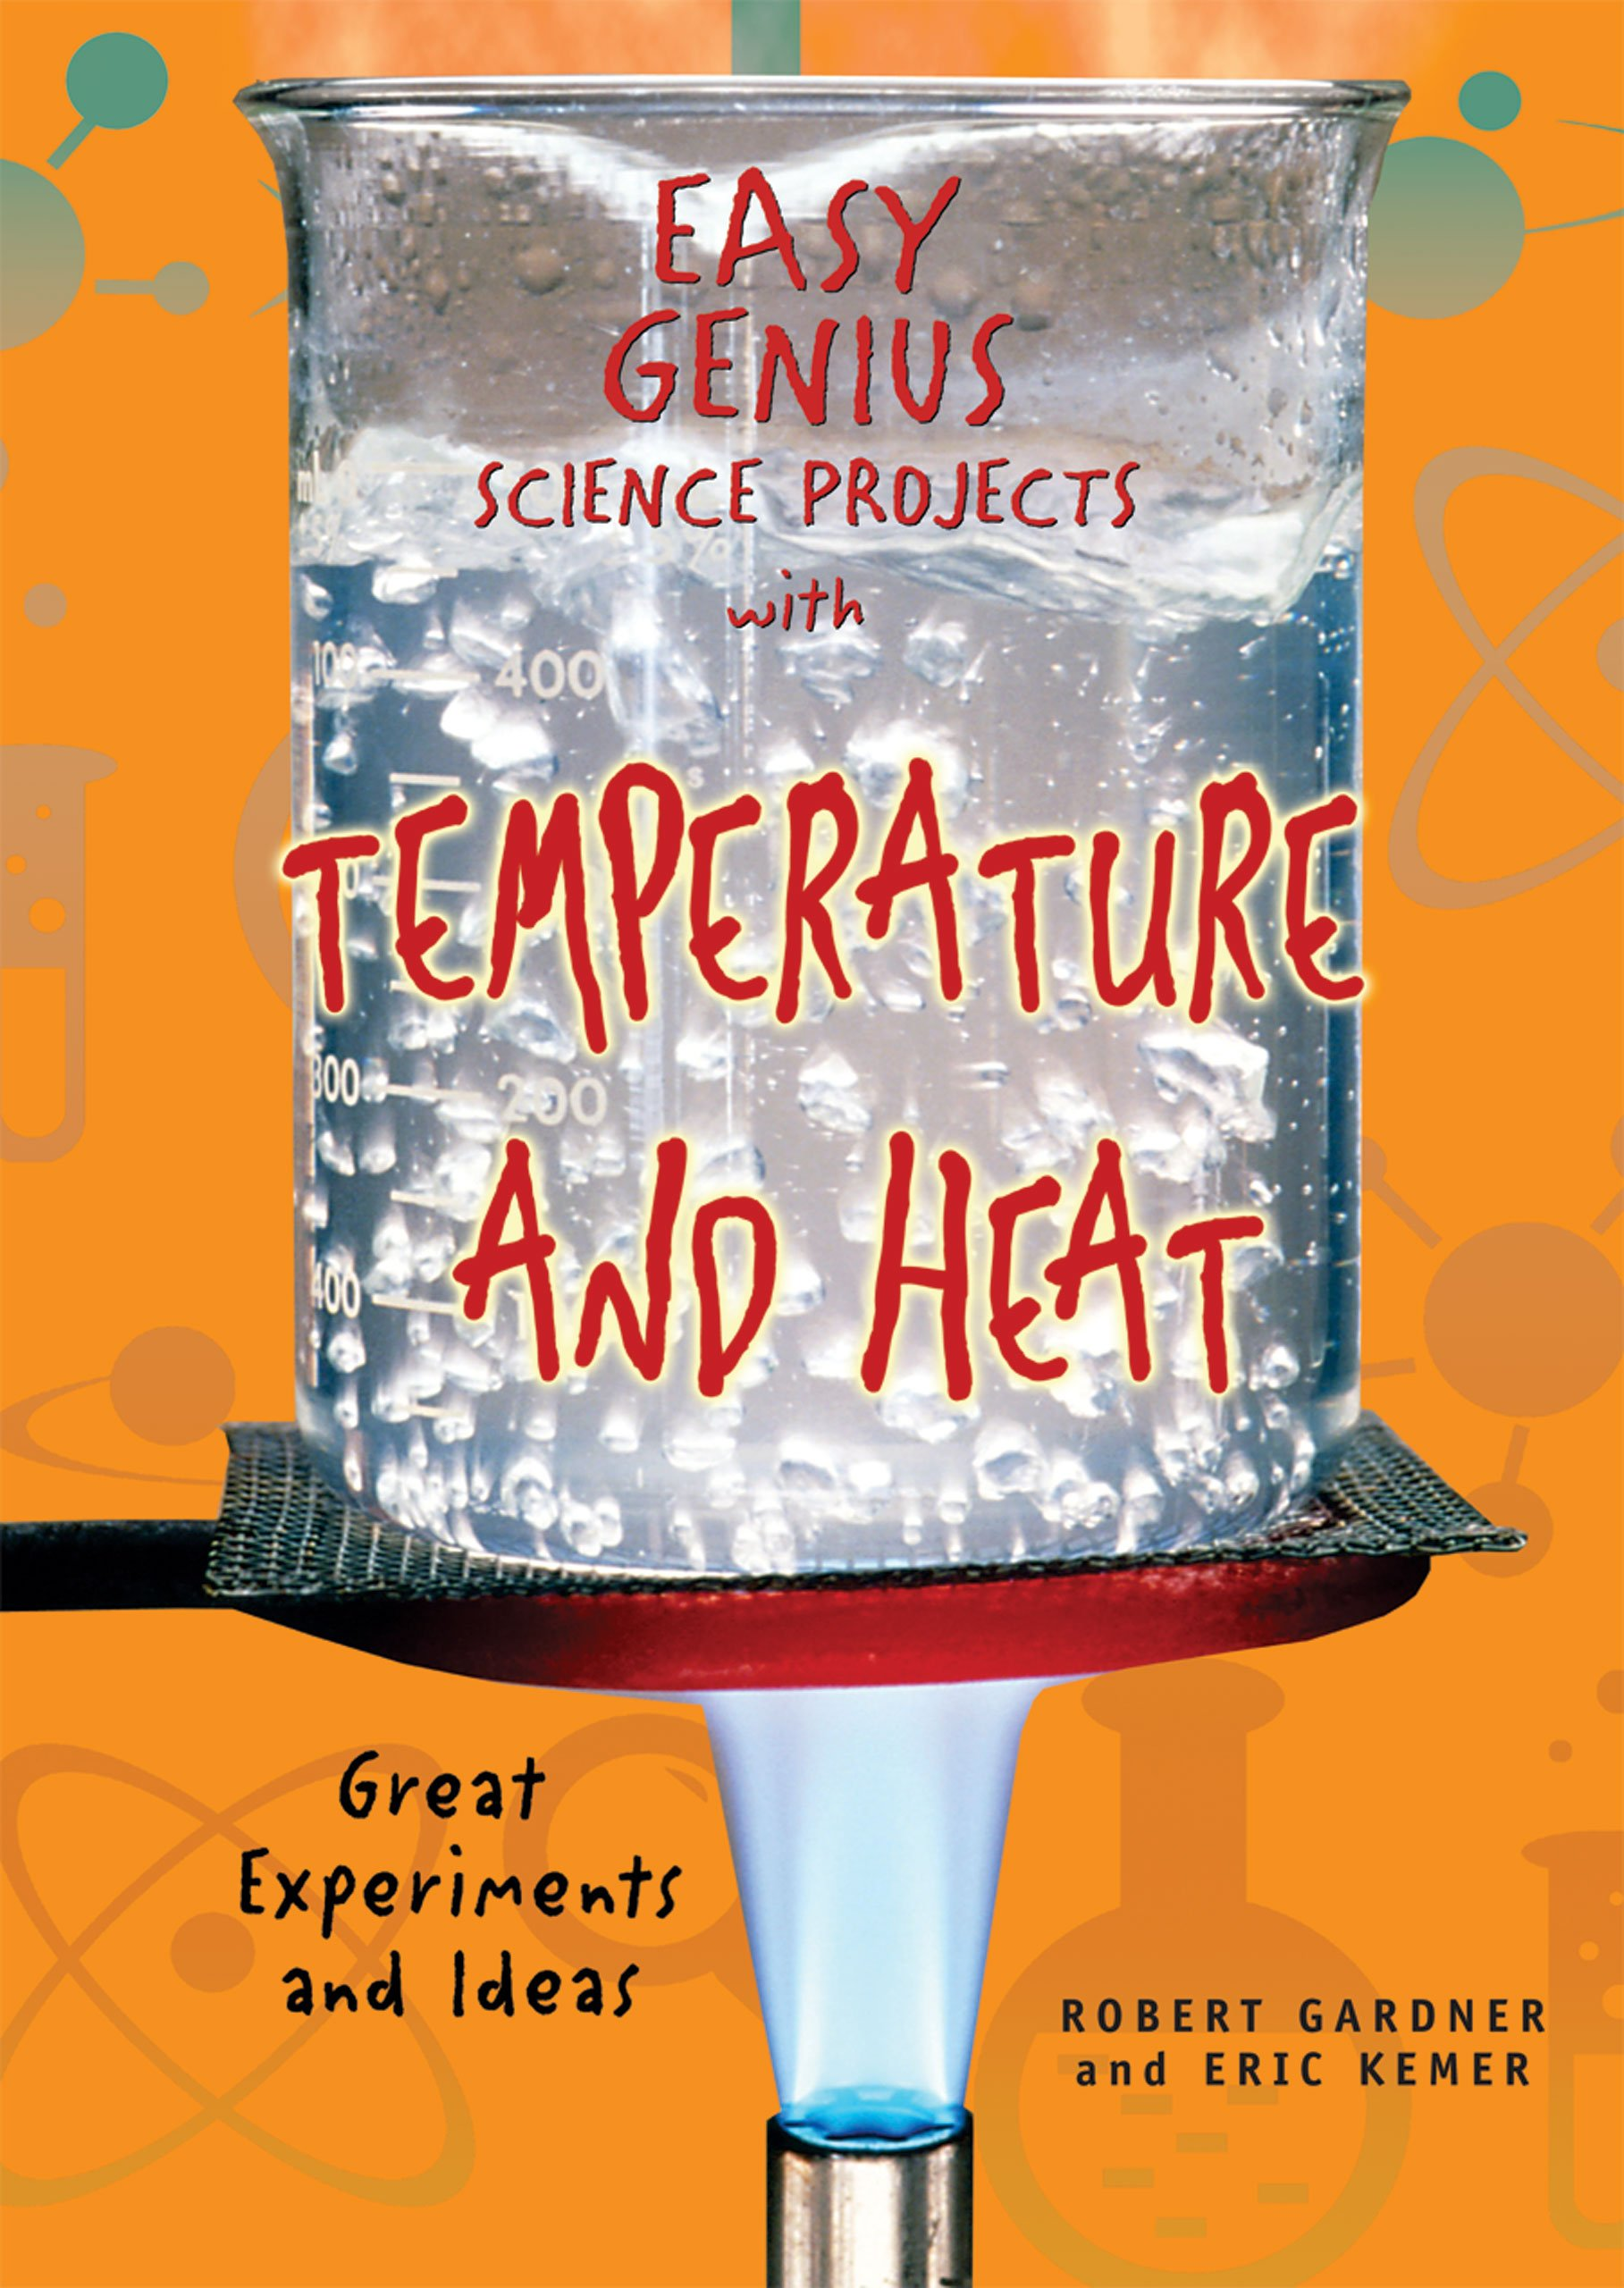 Easy Genius Science Projects With Temperature And Heat Great Experiments Ideas Robert Gardner Eric Kemer 9780766029392 Amazon Books